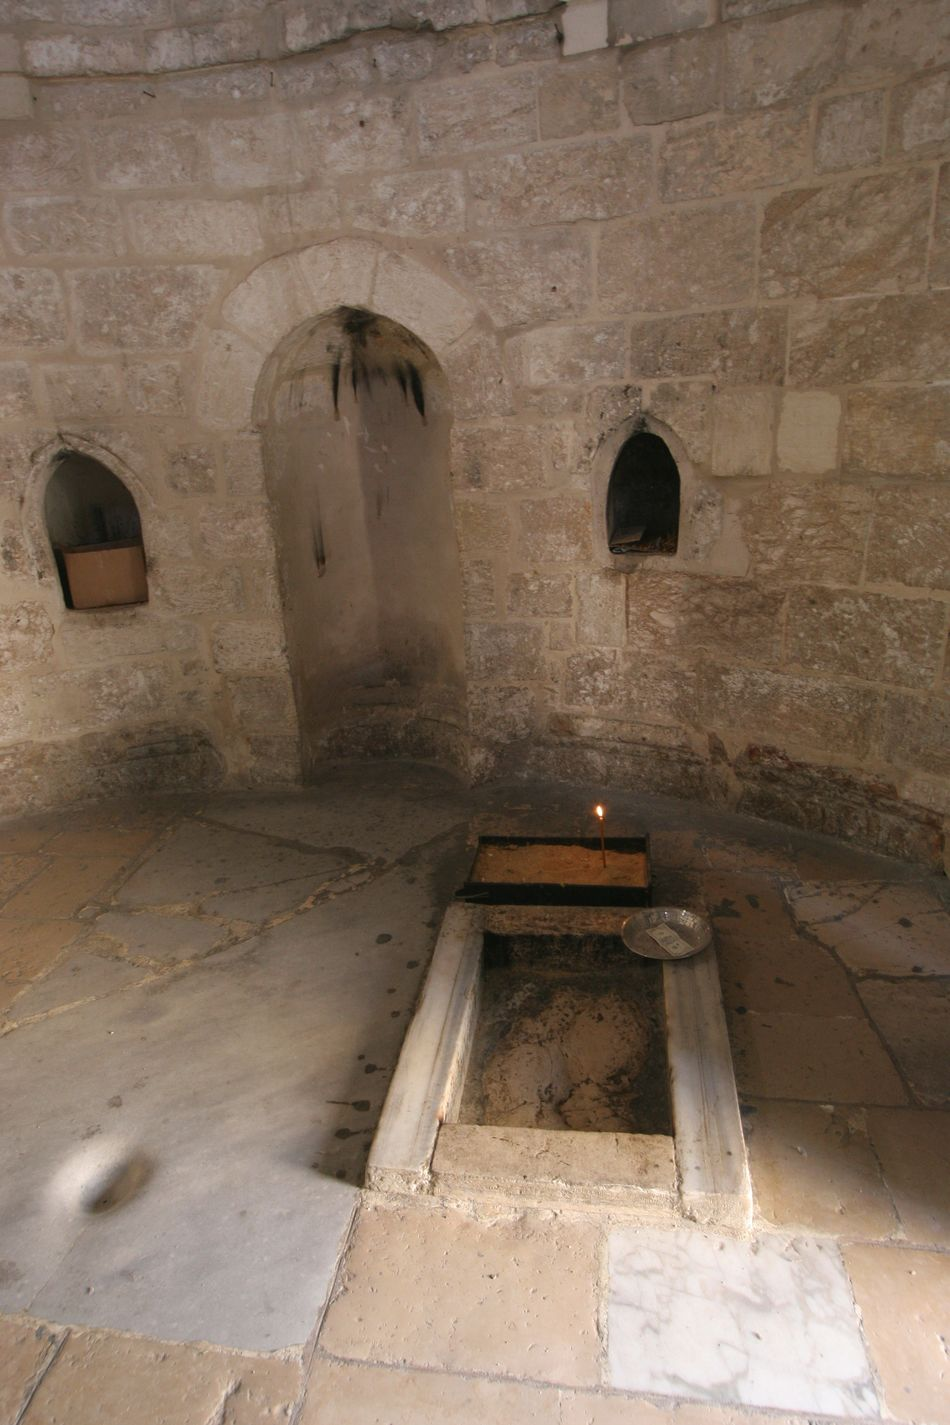 Chapel of the Ascension of Jesus Christ, Jerusalem, Israel Ancient Arch Architecture Ascension Built Structure Chapel Christ Christianity Church City Holy Holy City Holy Land Israel Jerusalem Jesus Jesus Christ Middle East Mount Of Olives Old Palestine Pilgrimage Religion Wall Worship